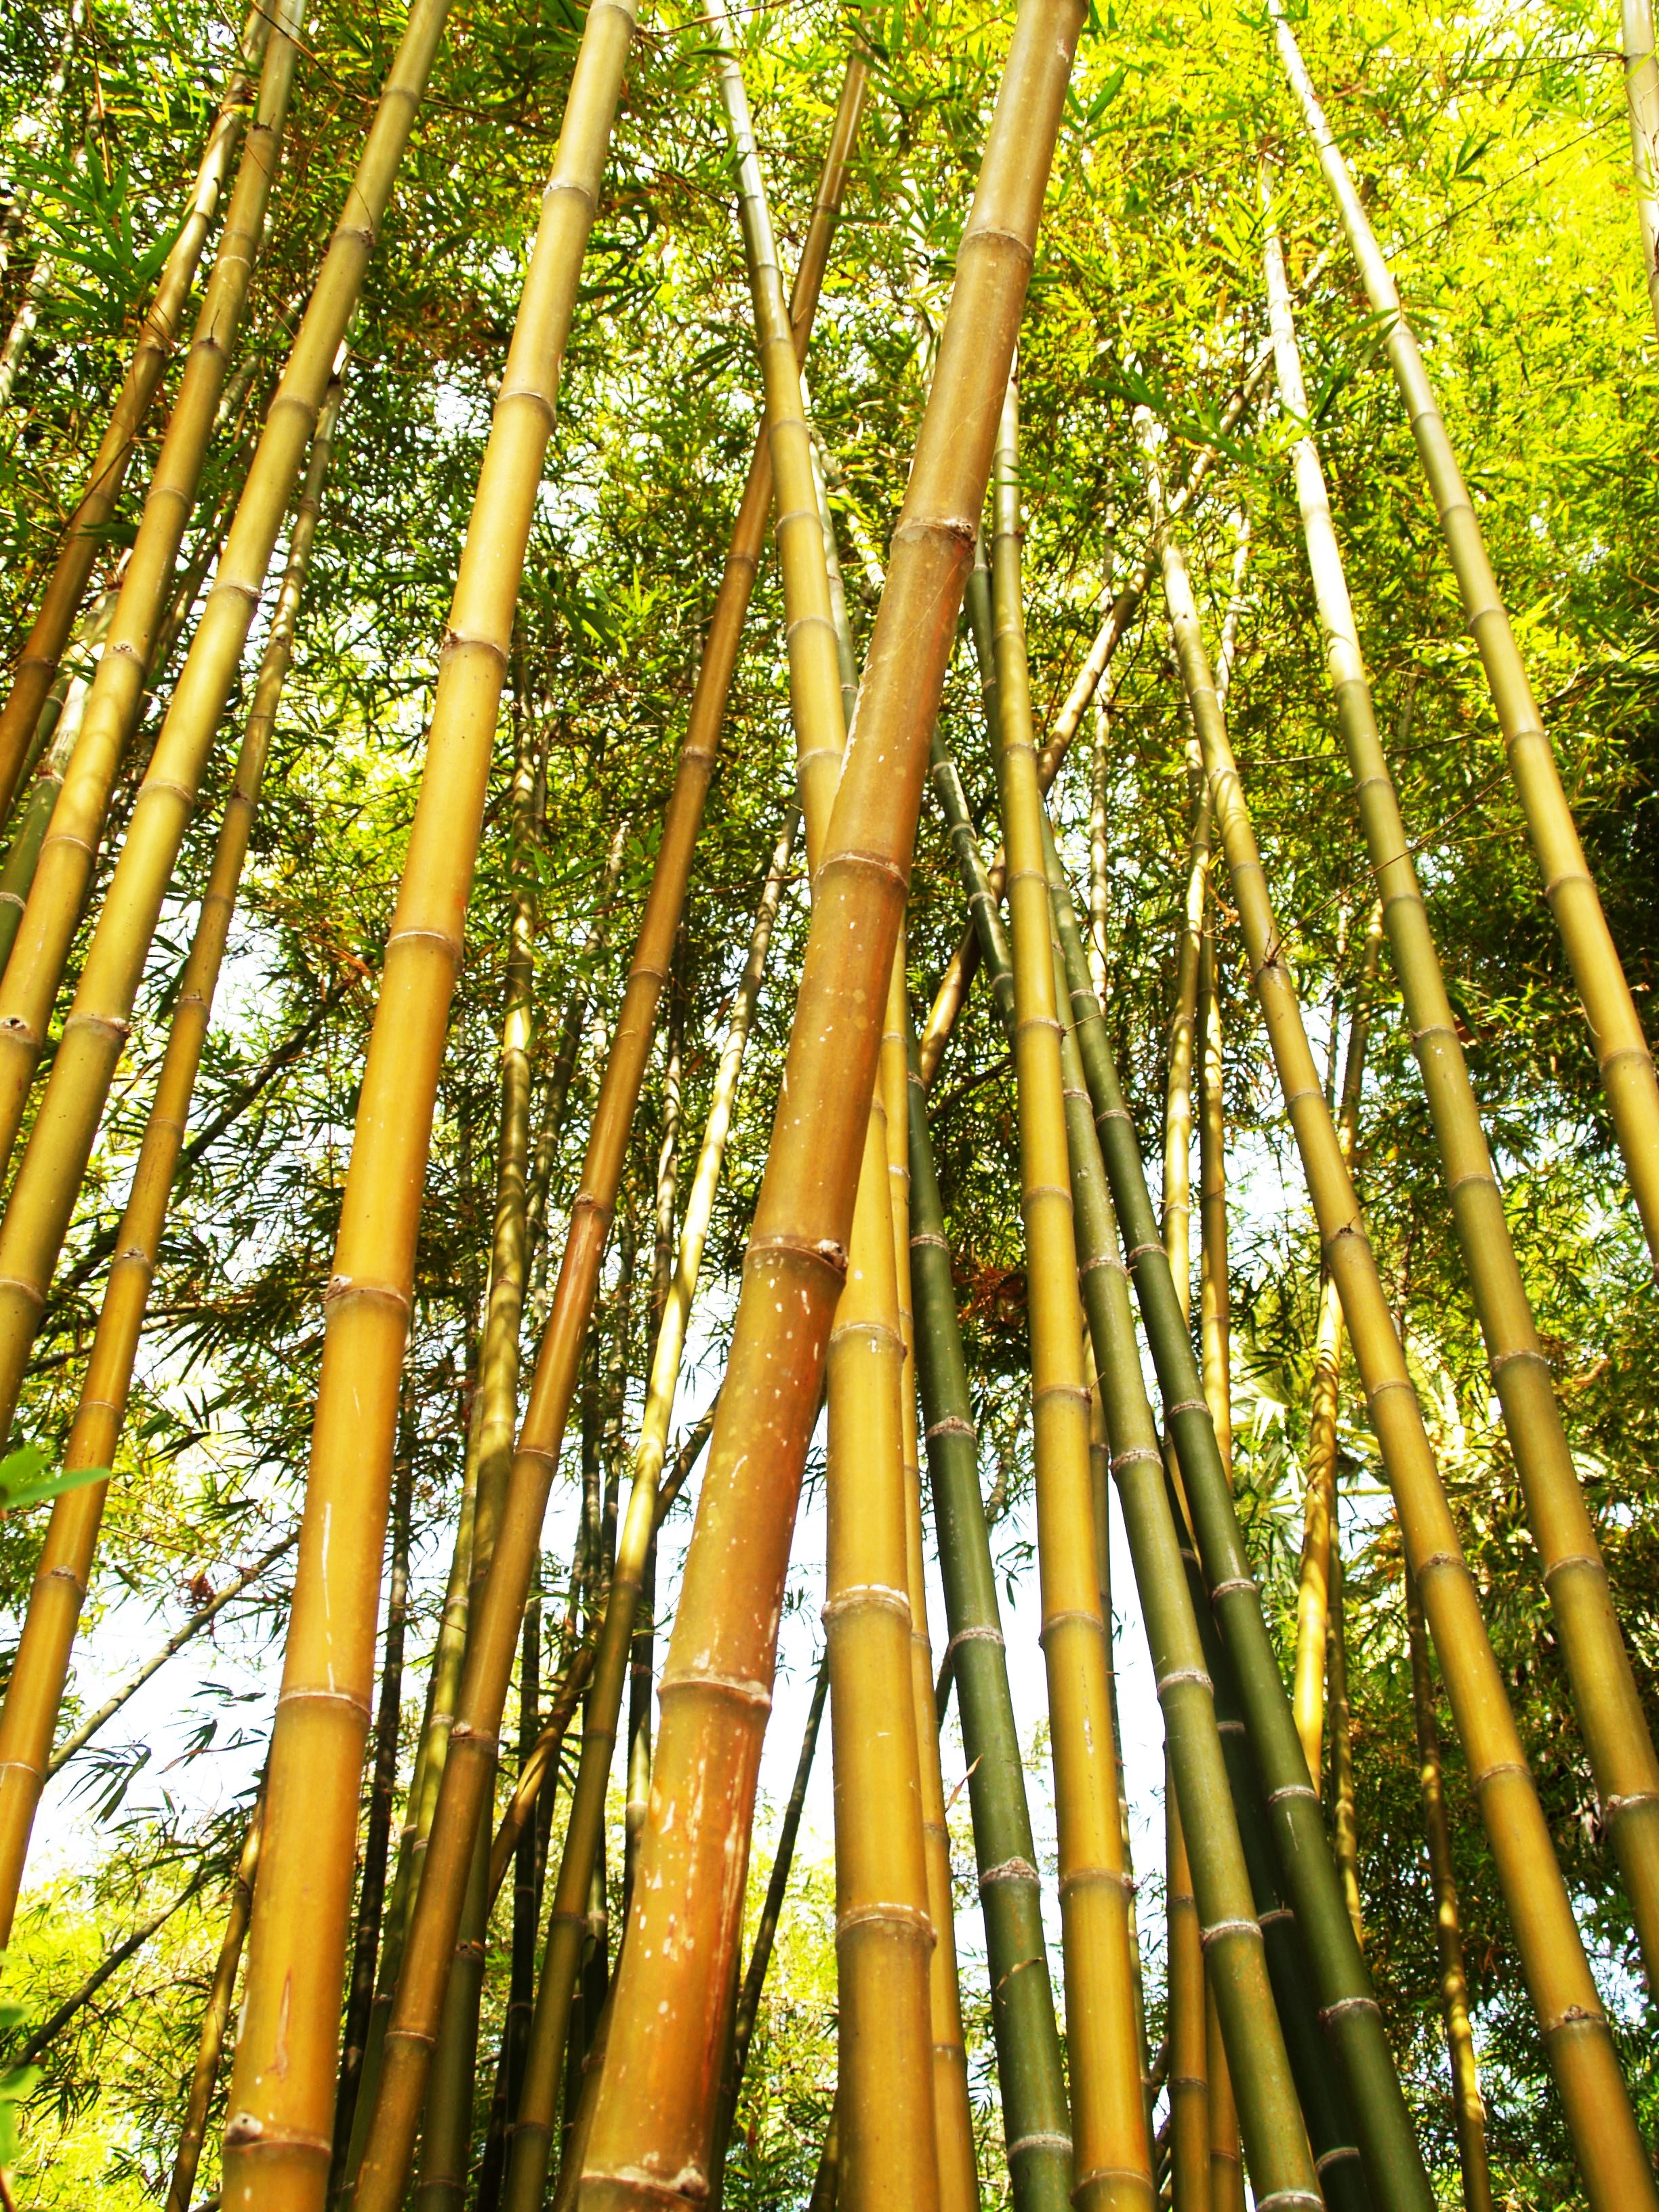 Bamboo Tree During Daytime Icon0